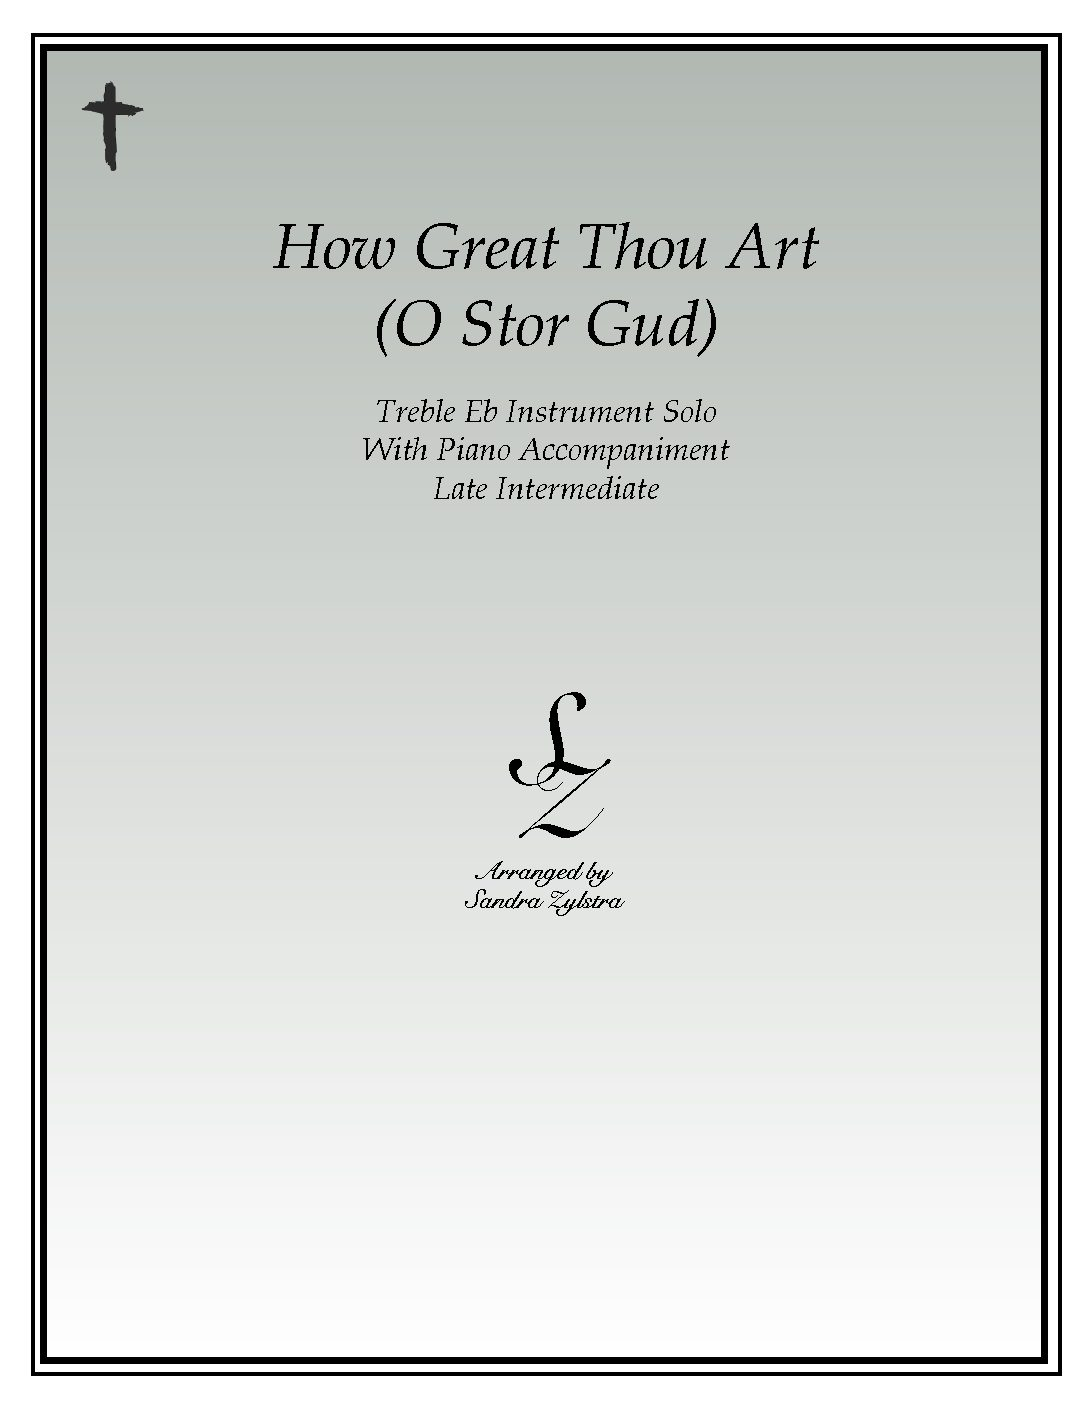 How Great Thou Art (O Stor Gud) -Treble Eb Instrument Solo